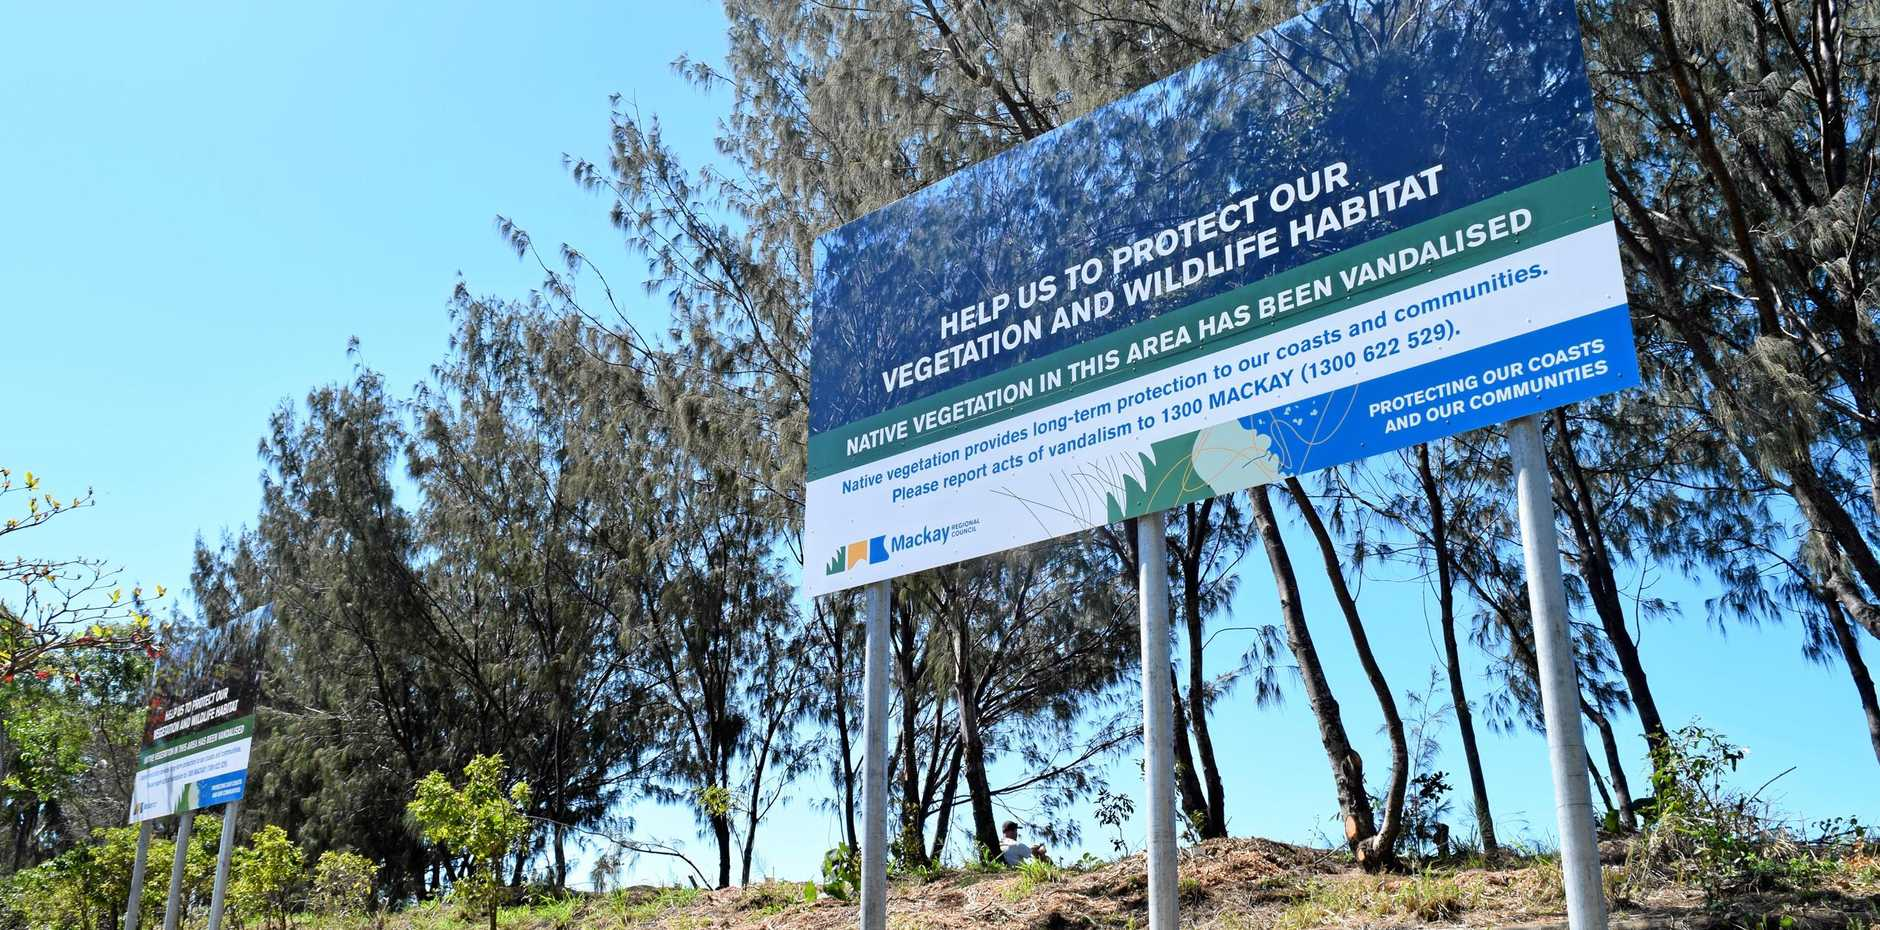 Mackay Regional Council erected three billboards to block the stolen view after someone took to about 20 trees with an axe at Blacks Beach.